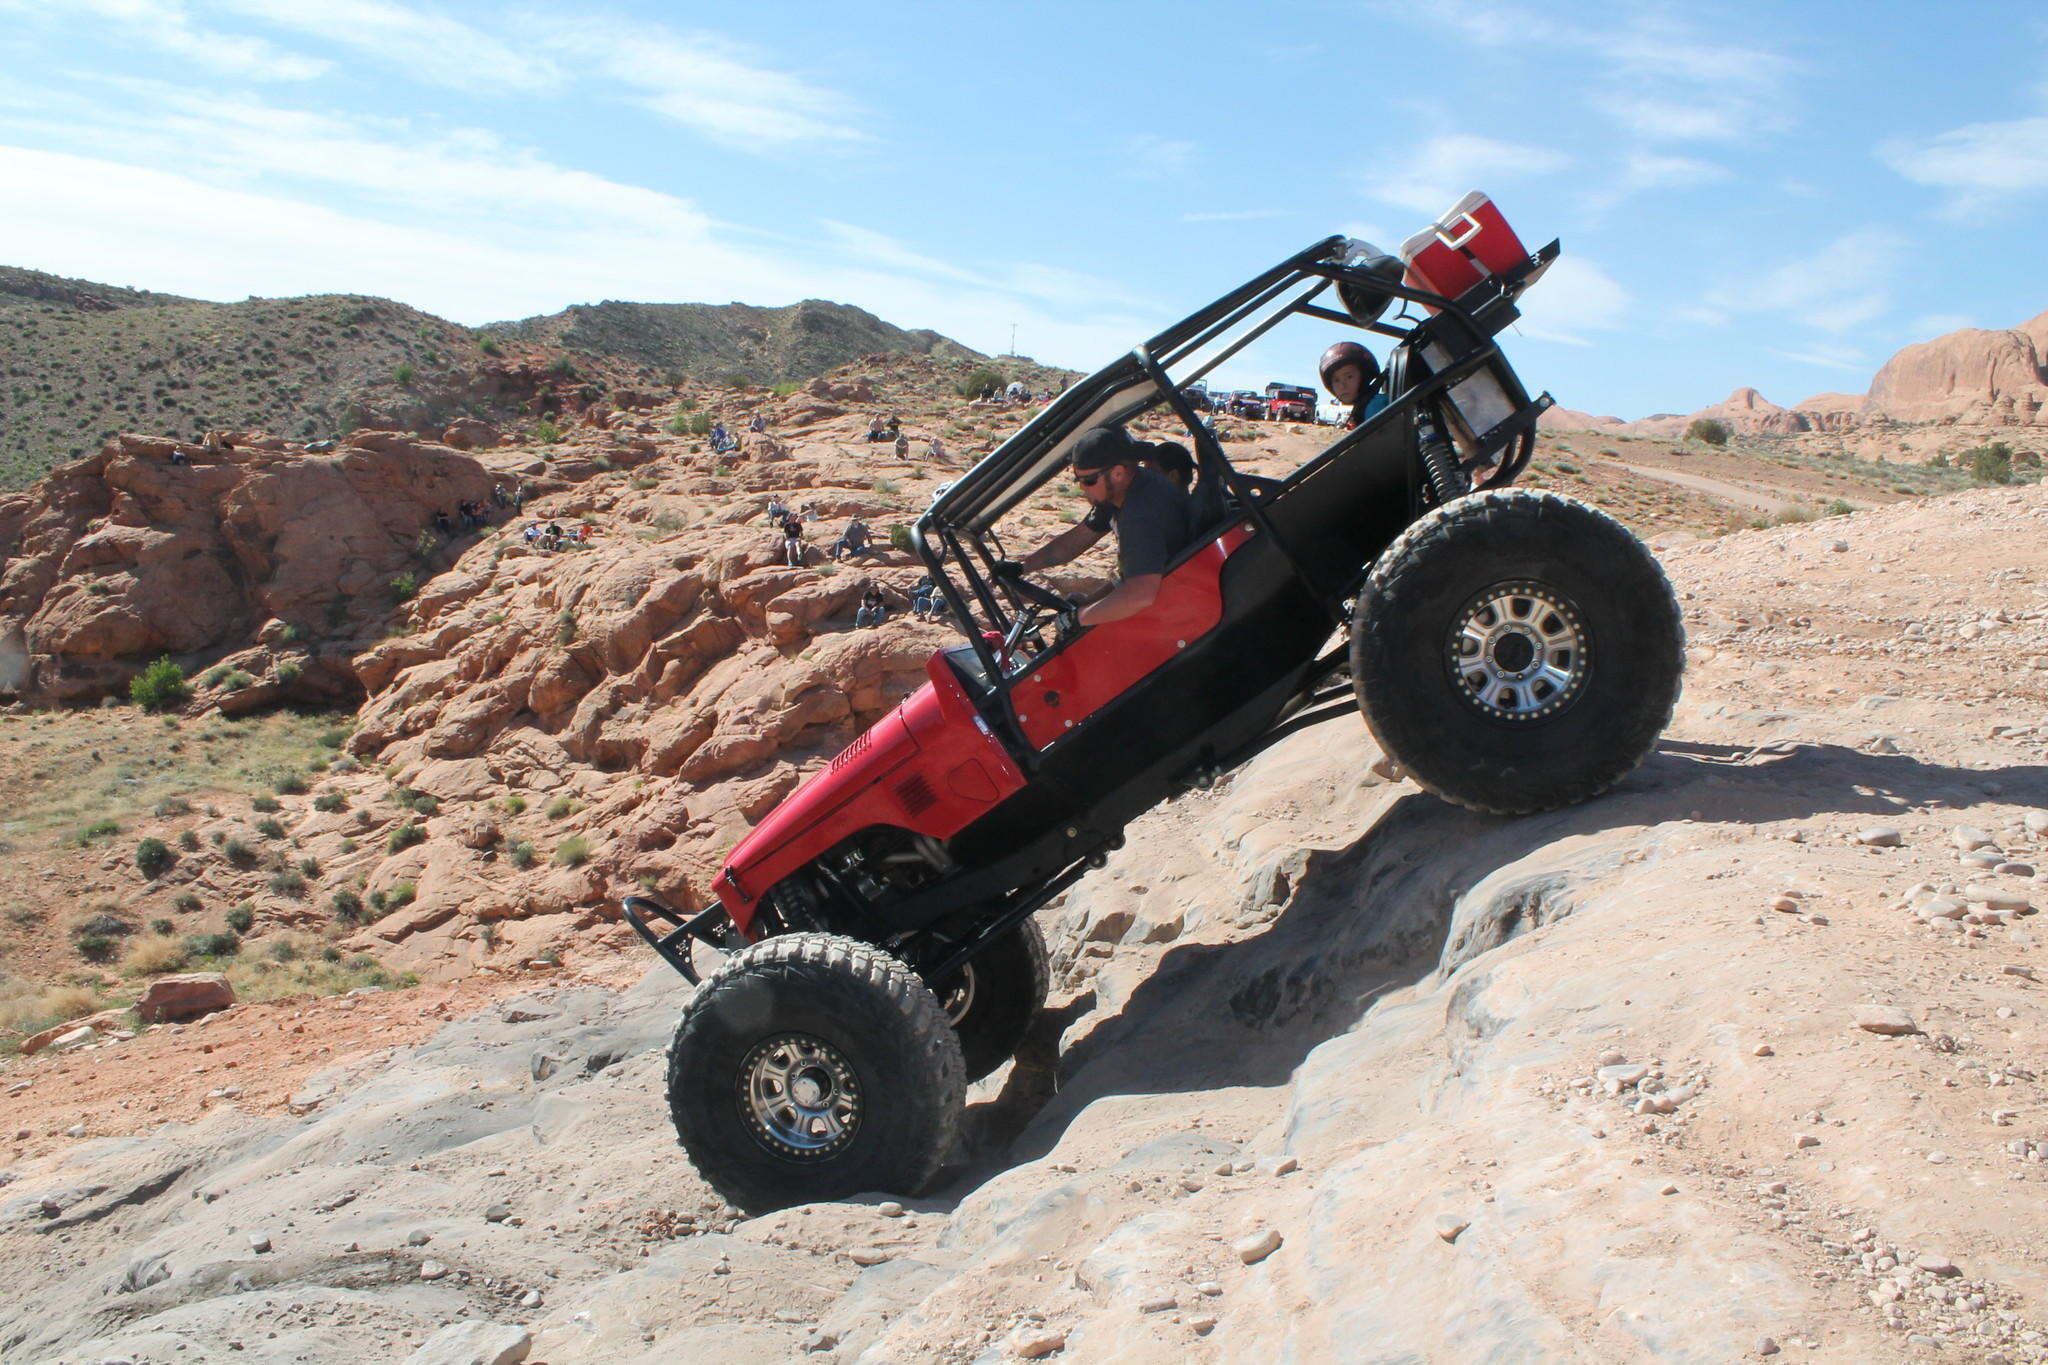 An off-roader and his family descend Potato Salad Hill outside Moab, Utah.